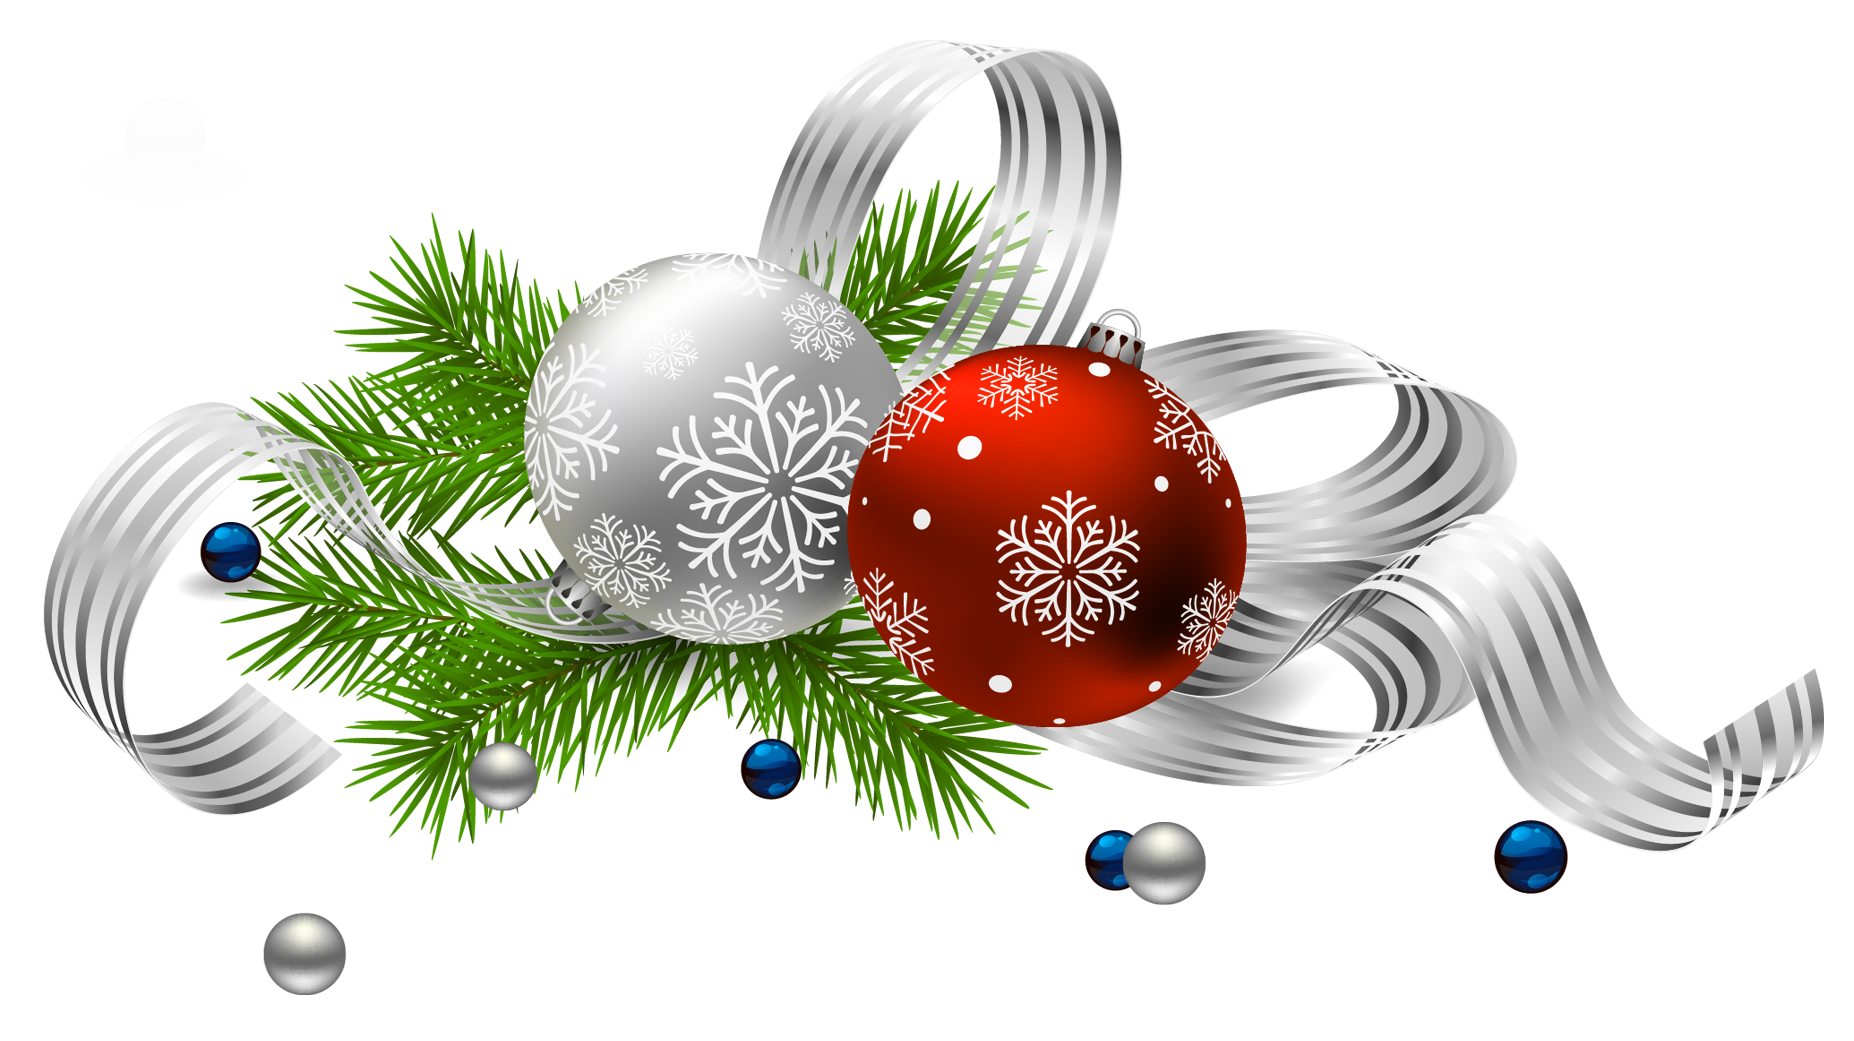 Christmas Ornament Png Transparent Christmas Ornament Png Images